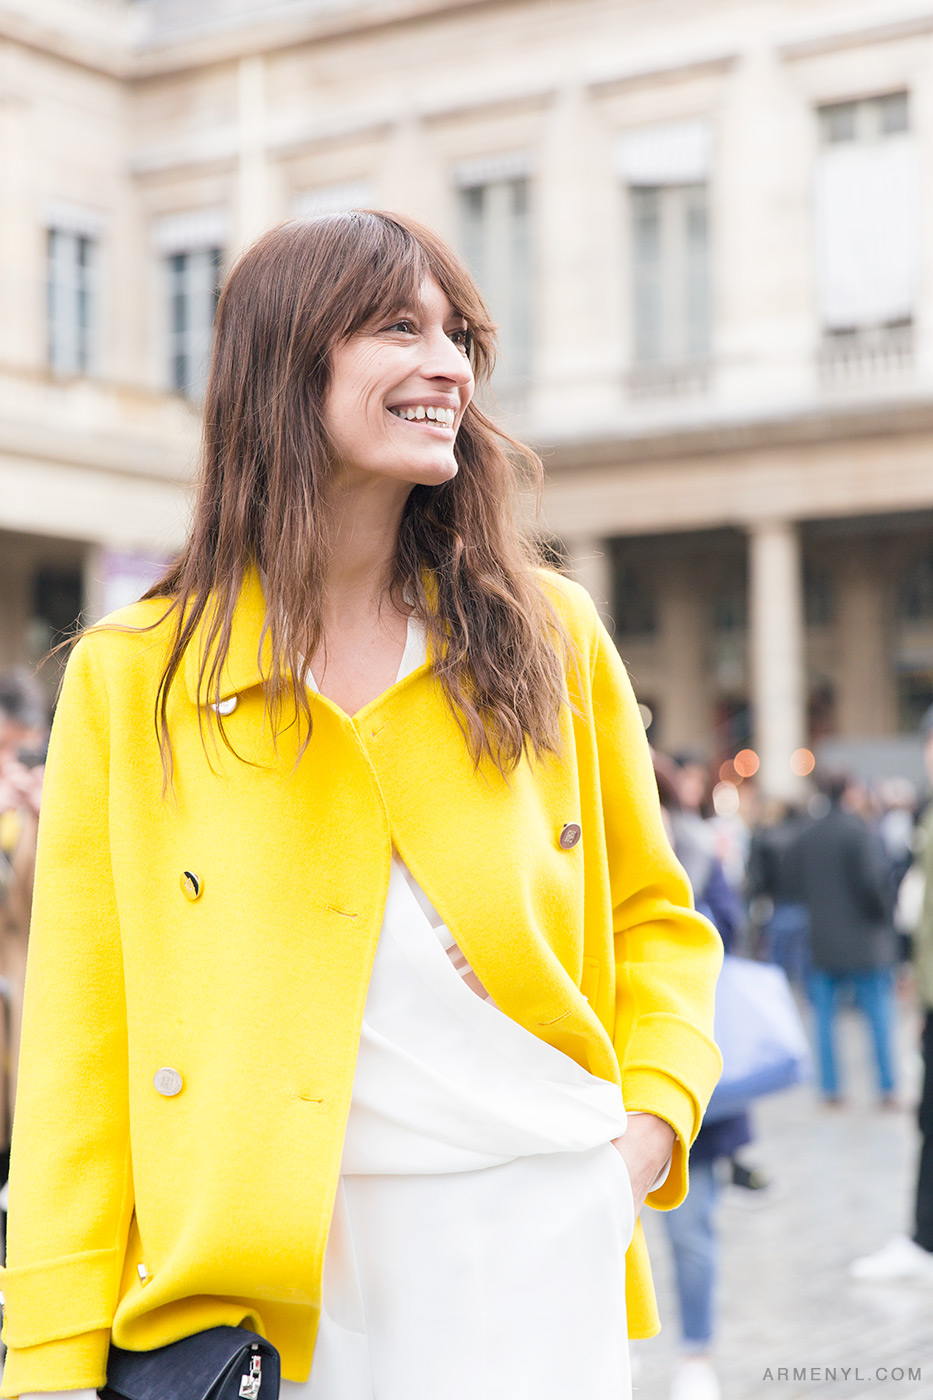 Caroline de Maigret in Paris after Isabel Marant show wearing Yellow coat photographed by Armenyl.com